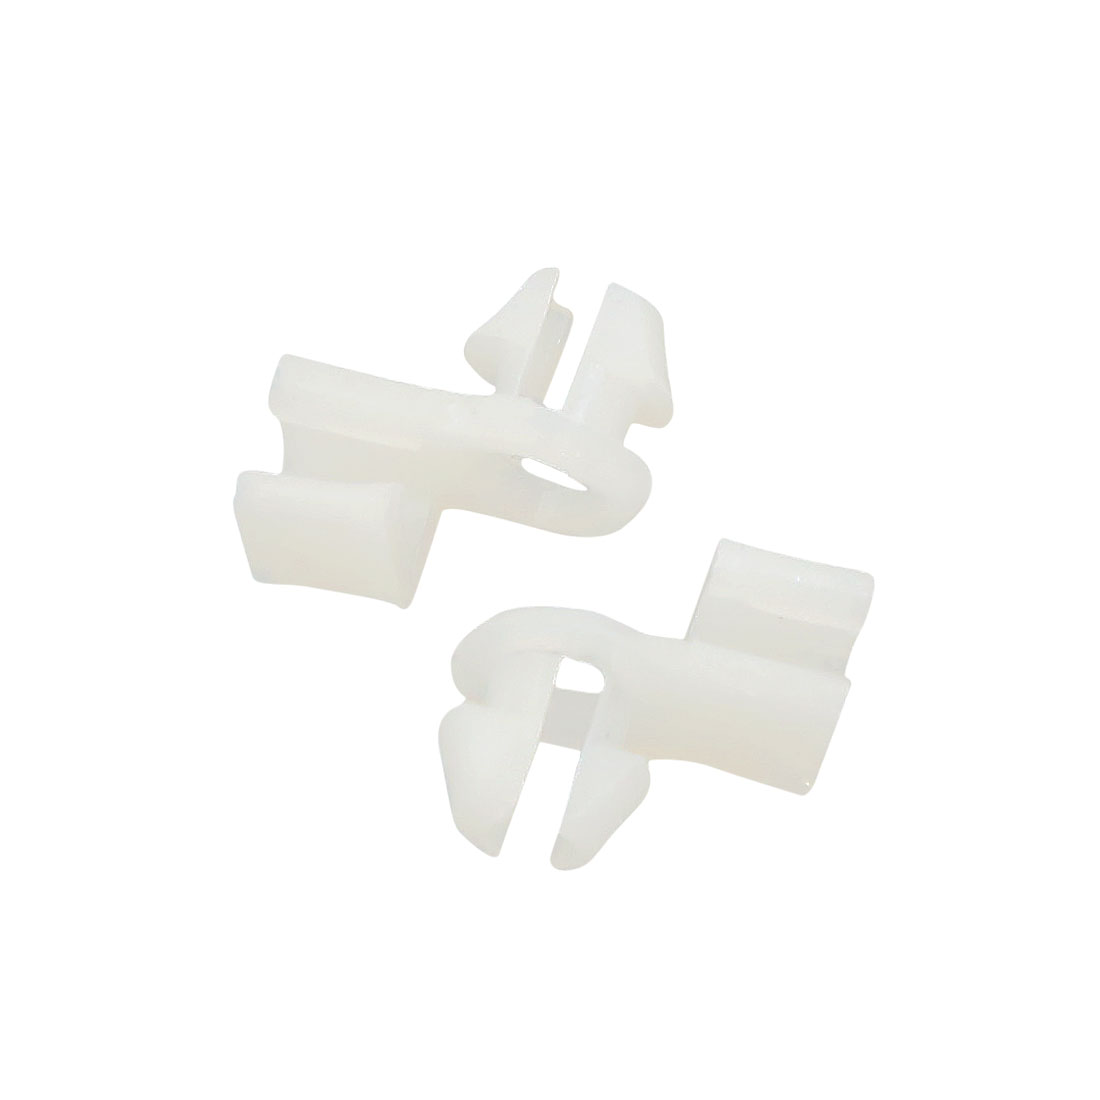 8mm Dia Hole Car Interior Door Trim Panel Moulding Fixing Clip Rivet White 20pcs - image 2 of 2